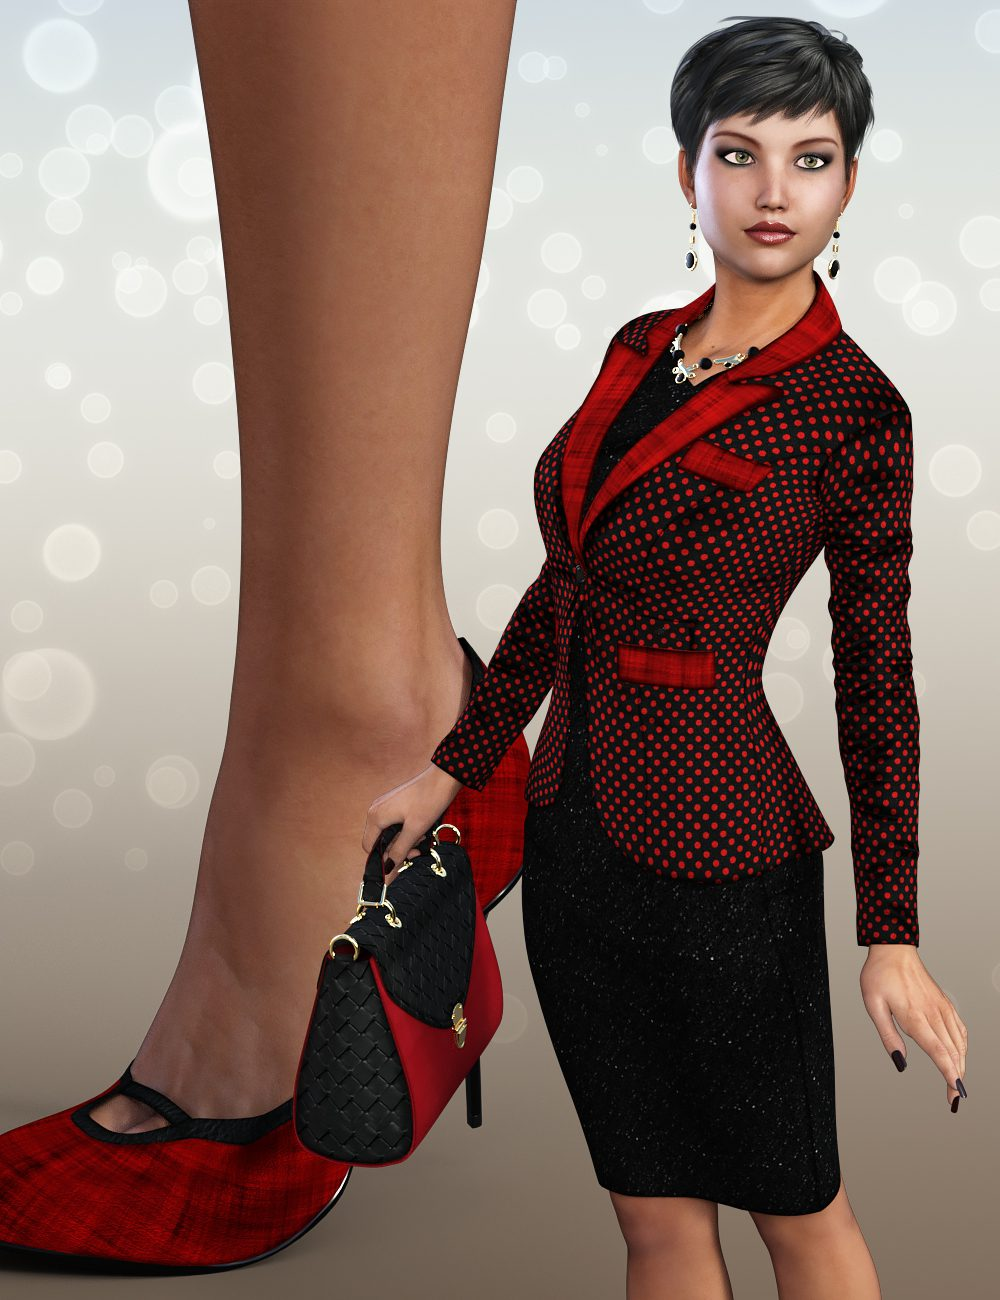 Sublime Couture for Business Outfit Genesis 3 Female(s)_DAZ3D下载站